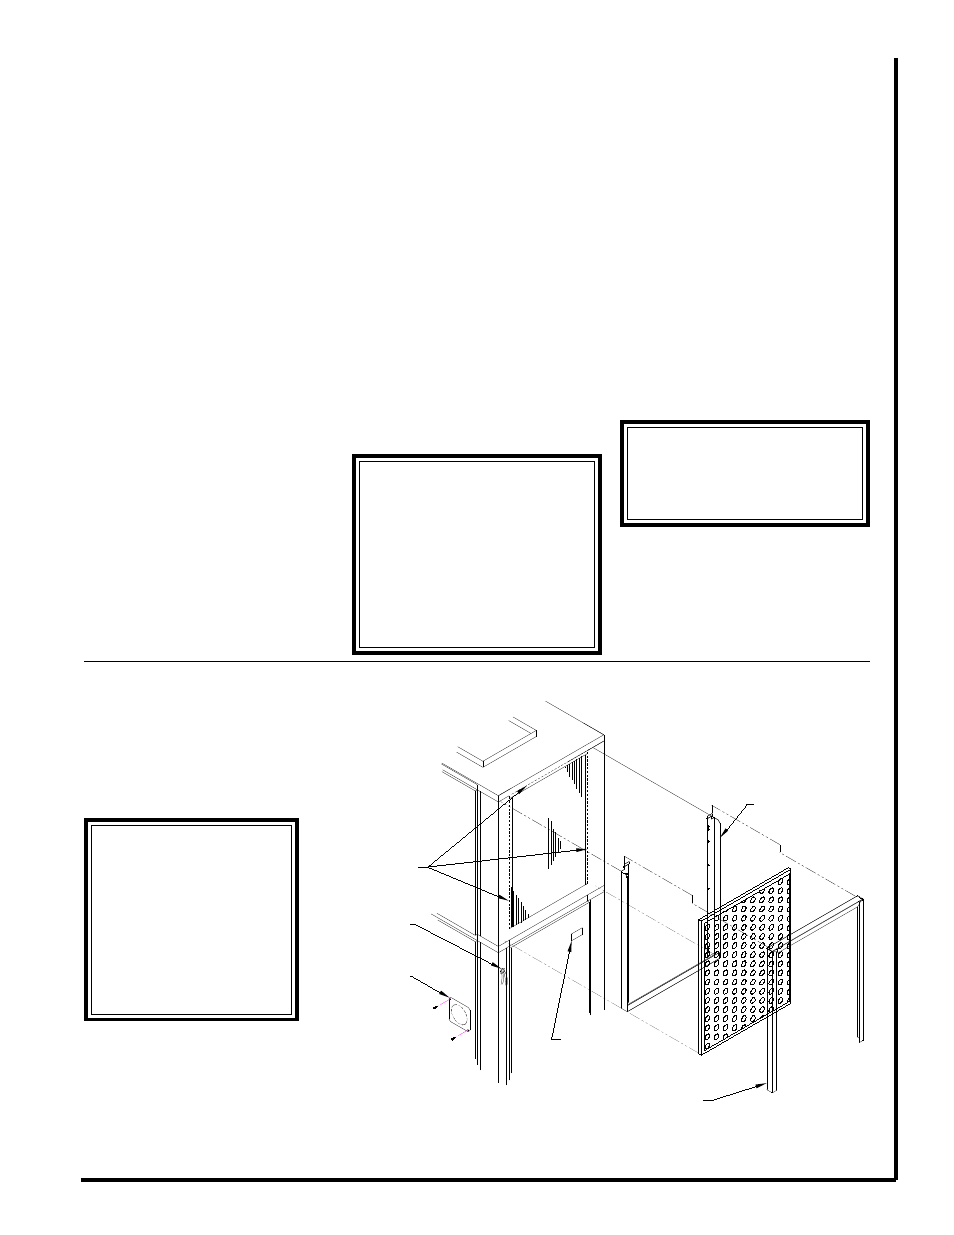 First Co Heat Pump Electrical Diagram Detailed Wiring Diagrams Spxa Cooling With Electric User Manual Page 3 6 Rheem